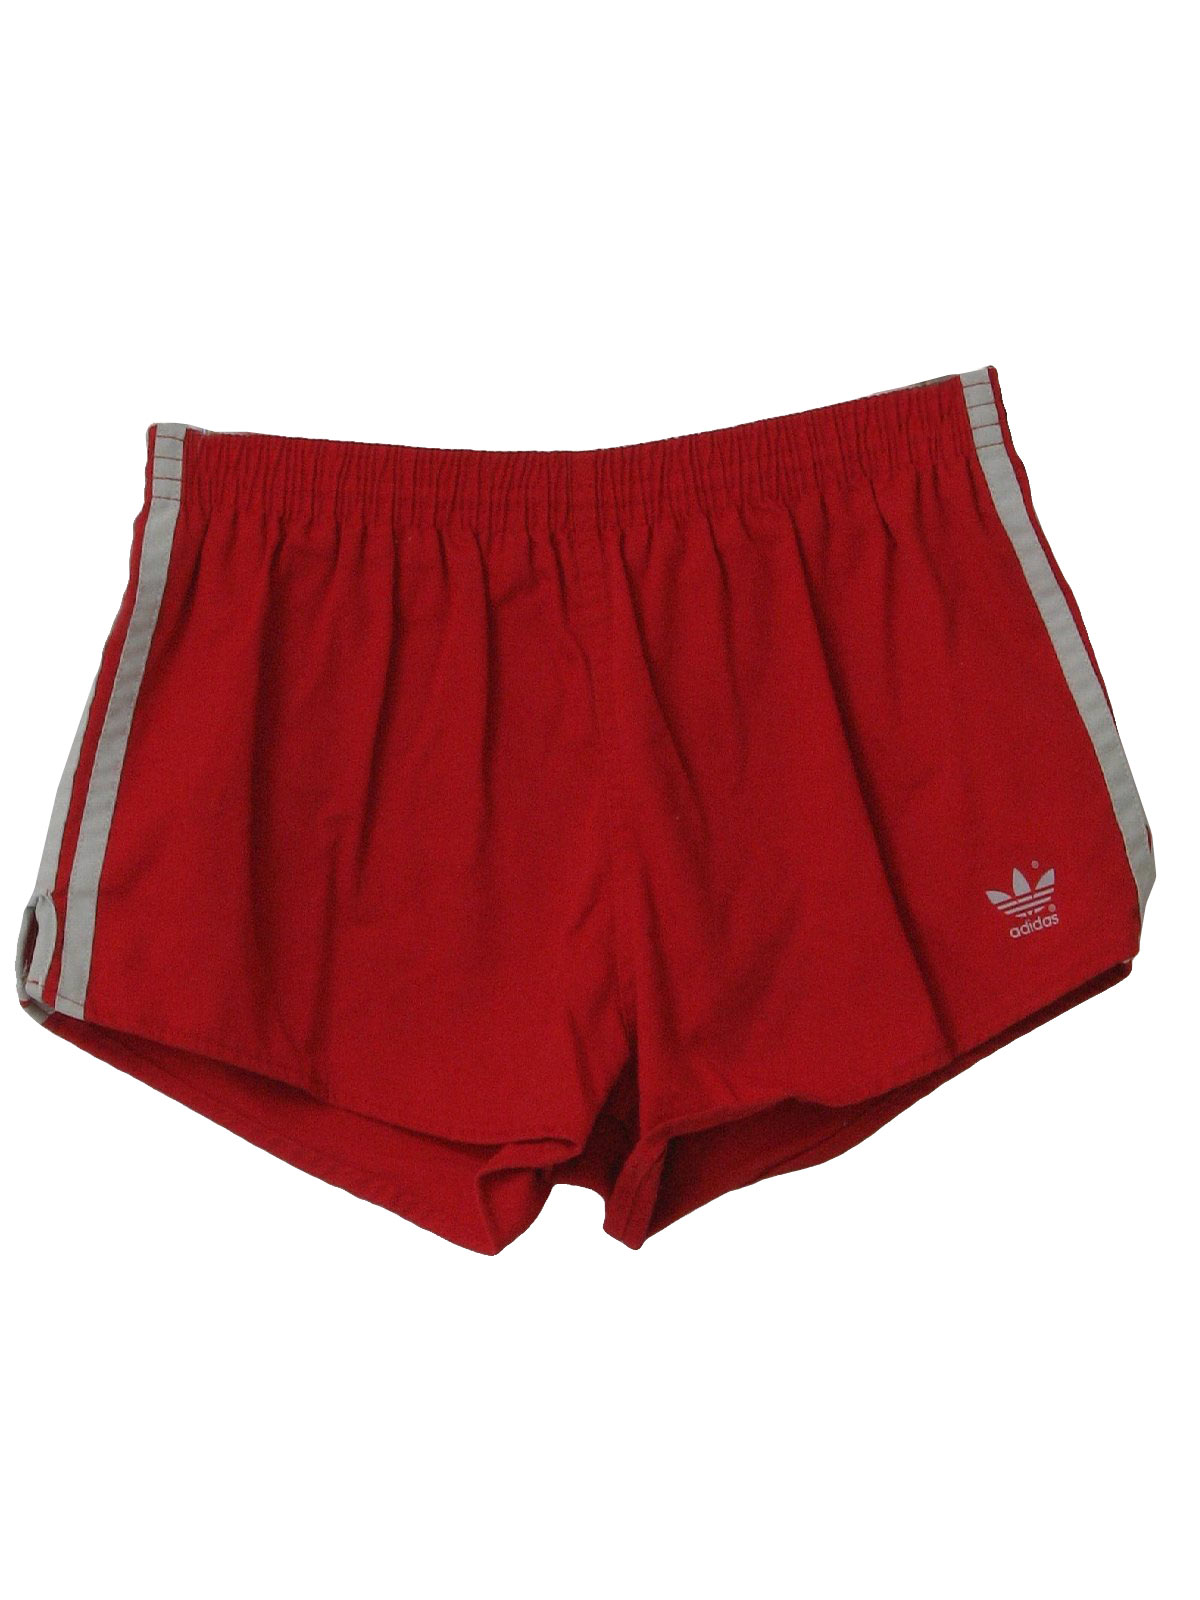 Vintage 1980 S Shorts 80s Adidas Mens Red Cotton And